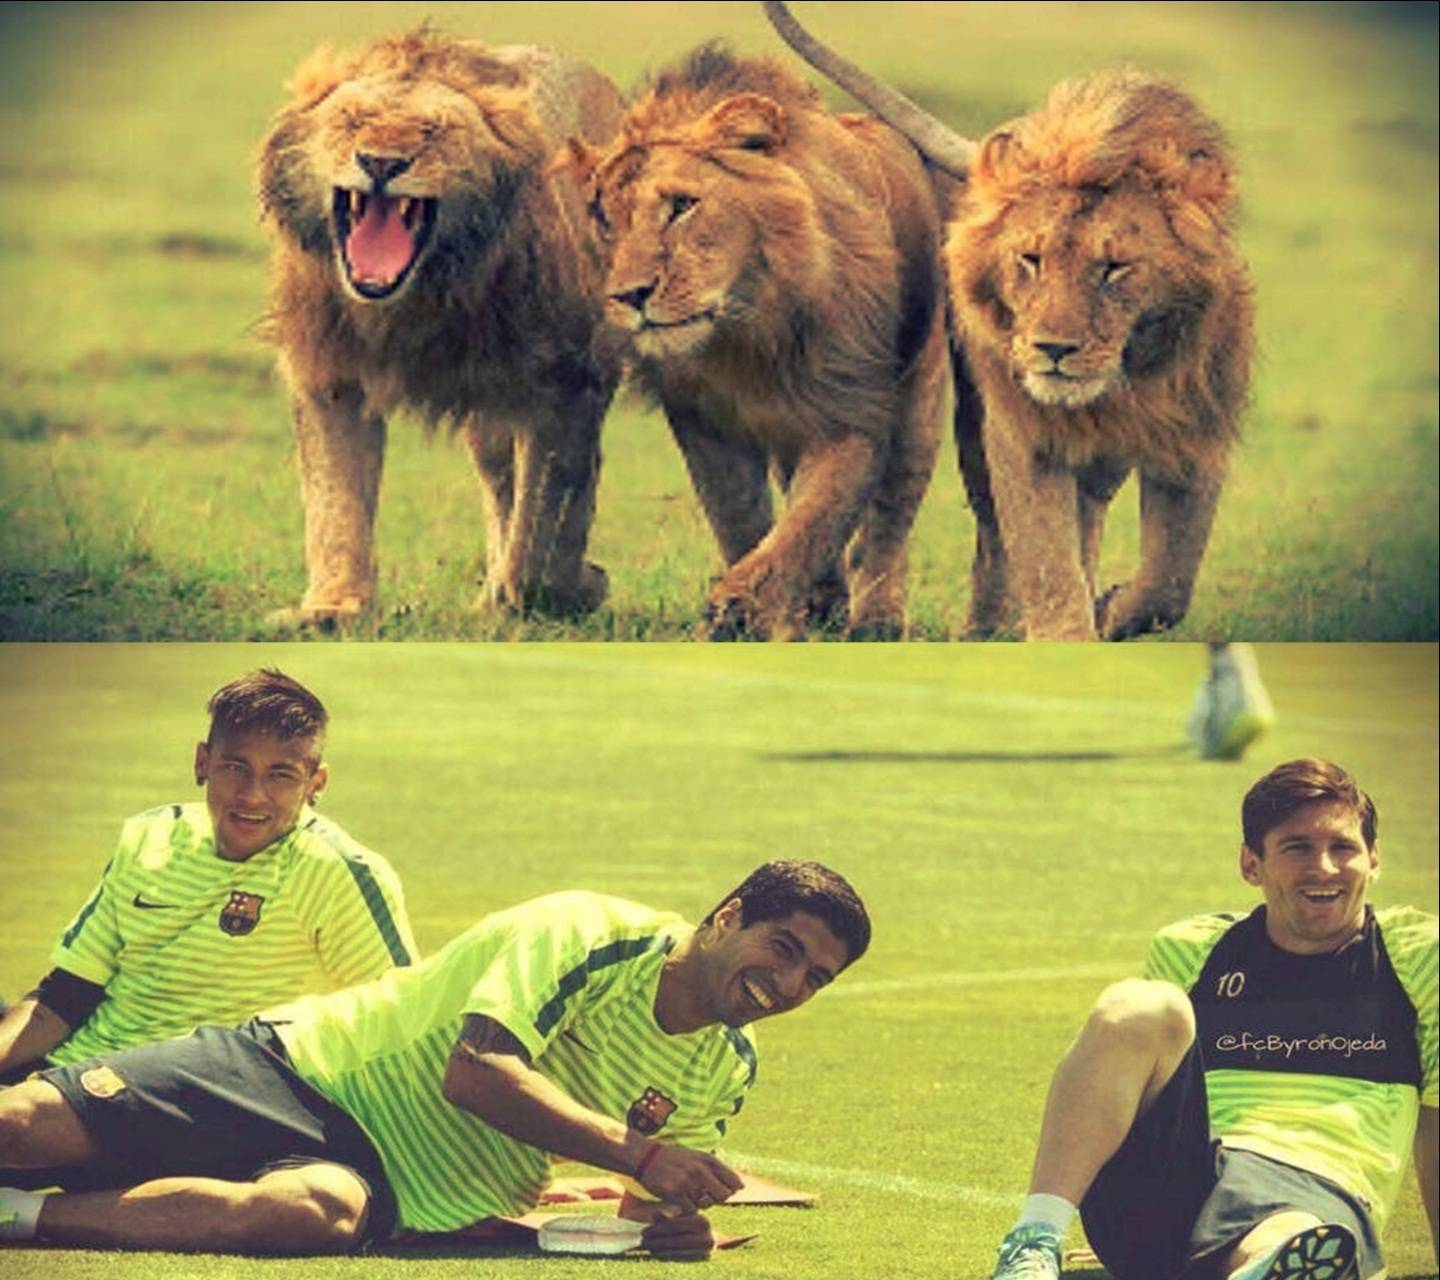 The kingss